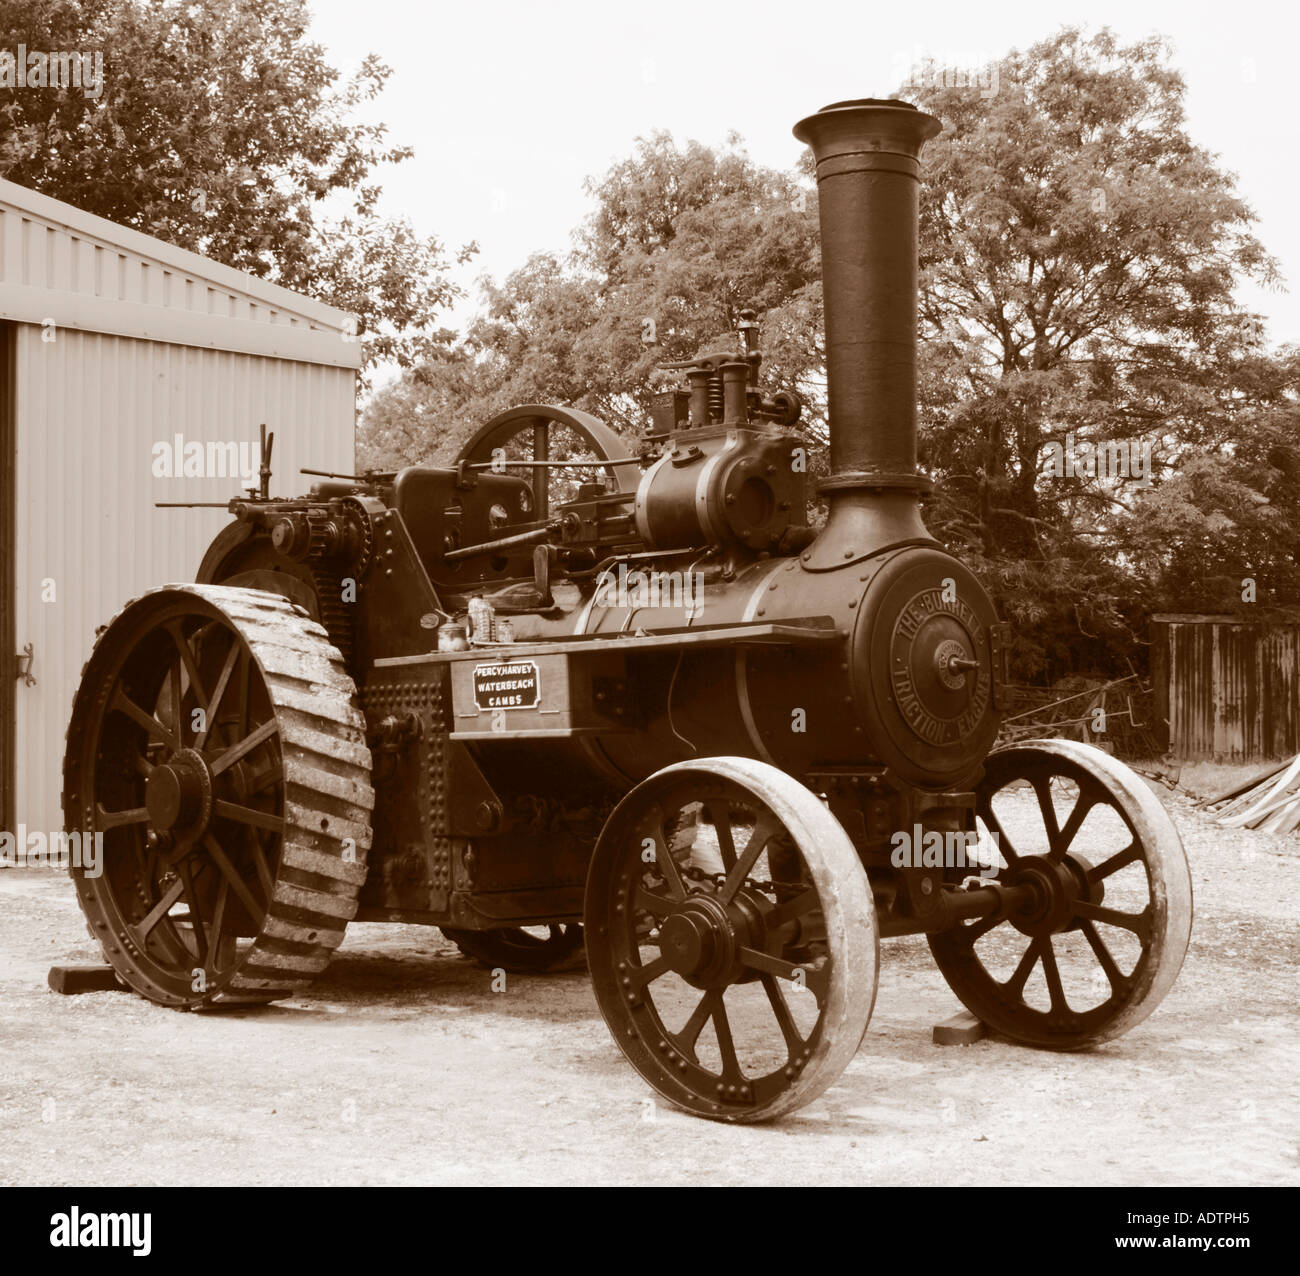 Traction Engine in Sepia - Stock Image